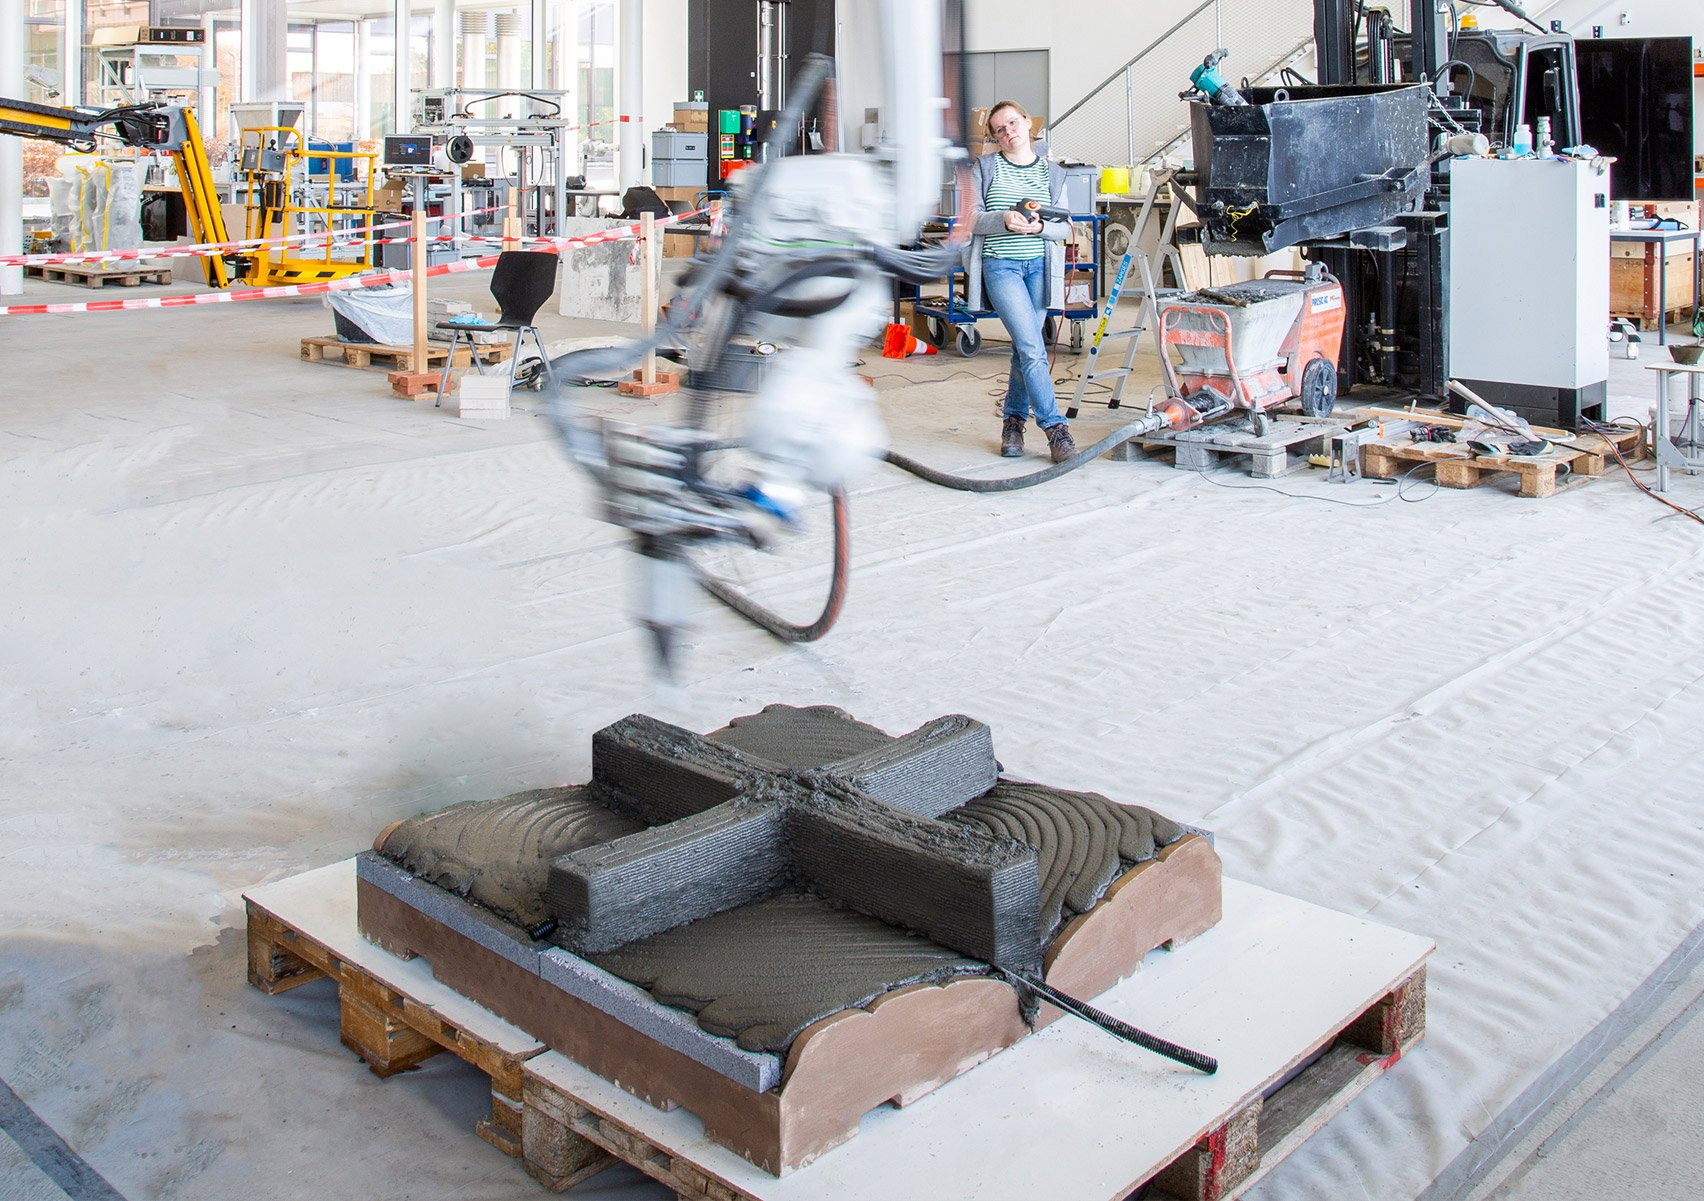 Fast Complexity concrete 3D printing by ETH Zurich